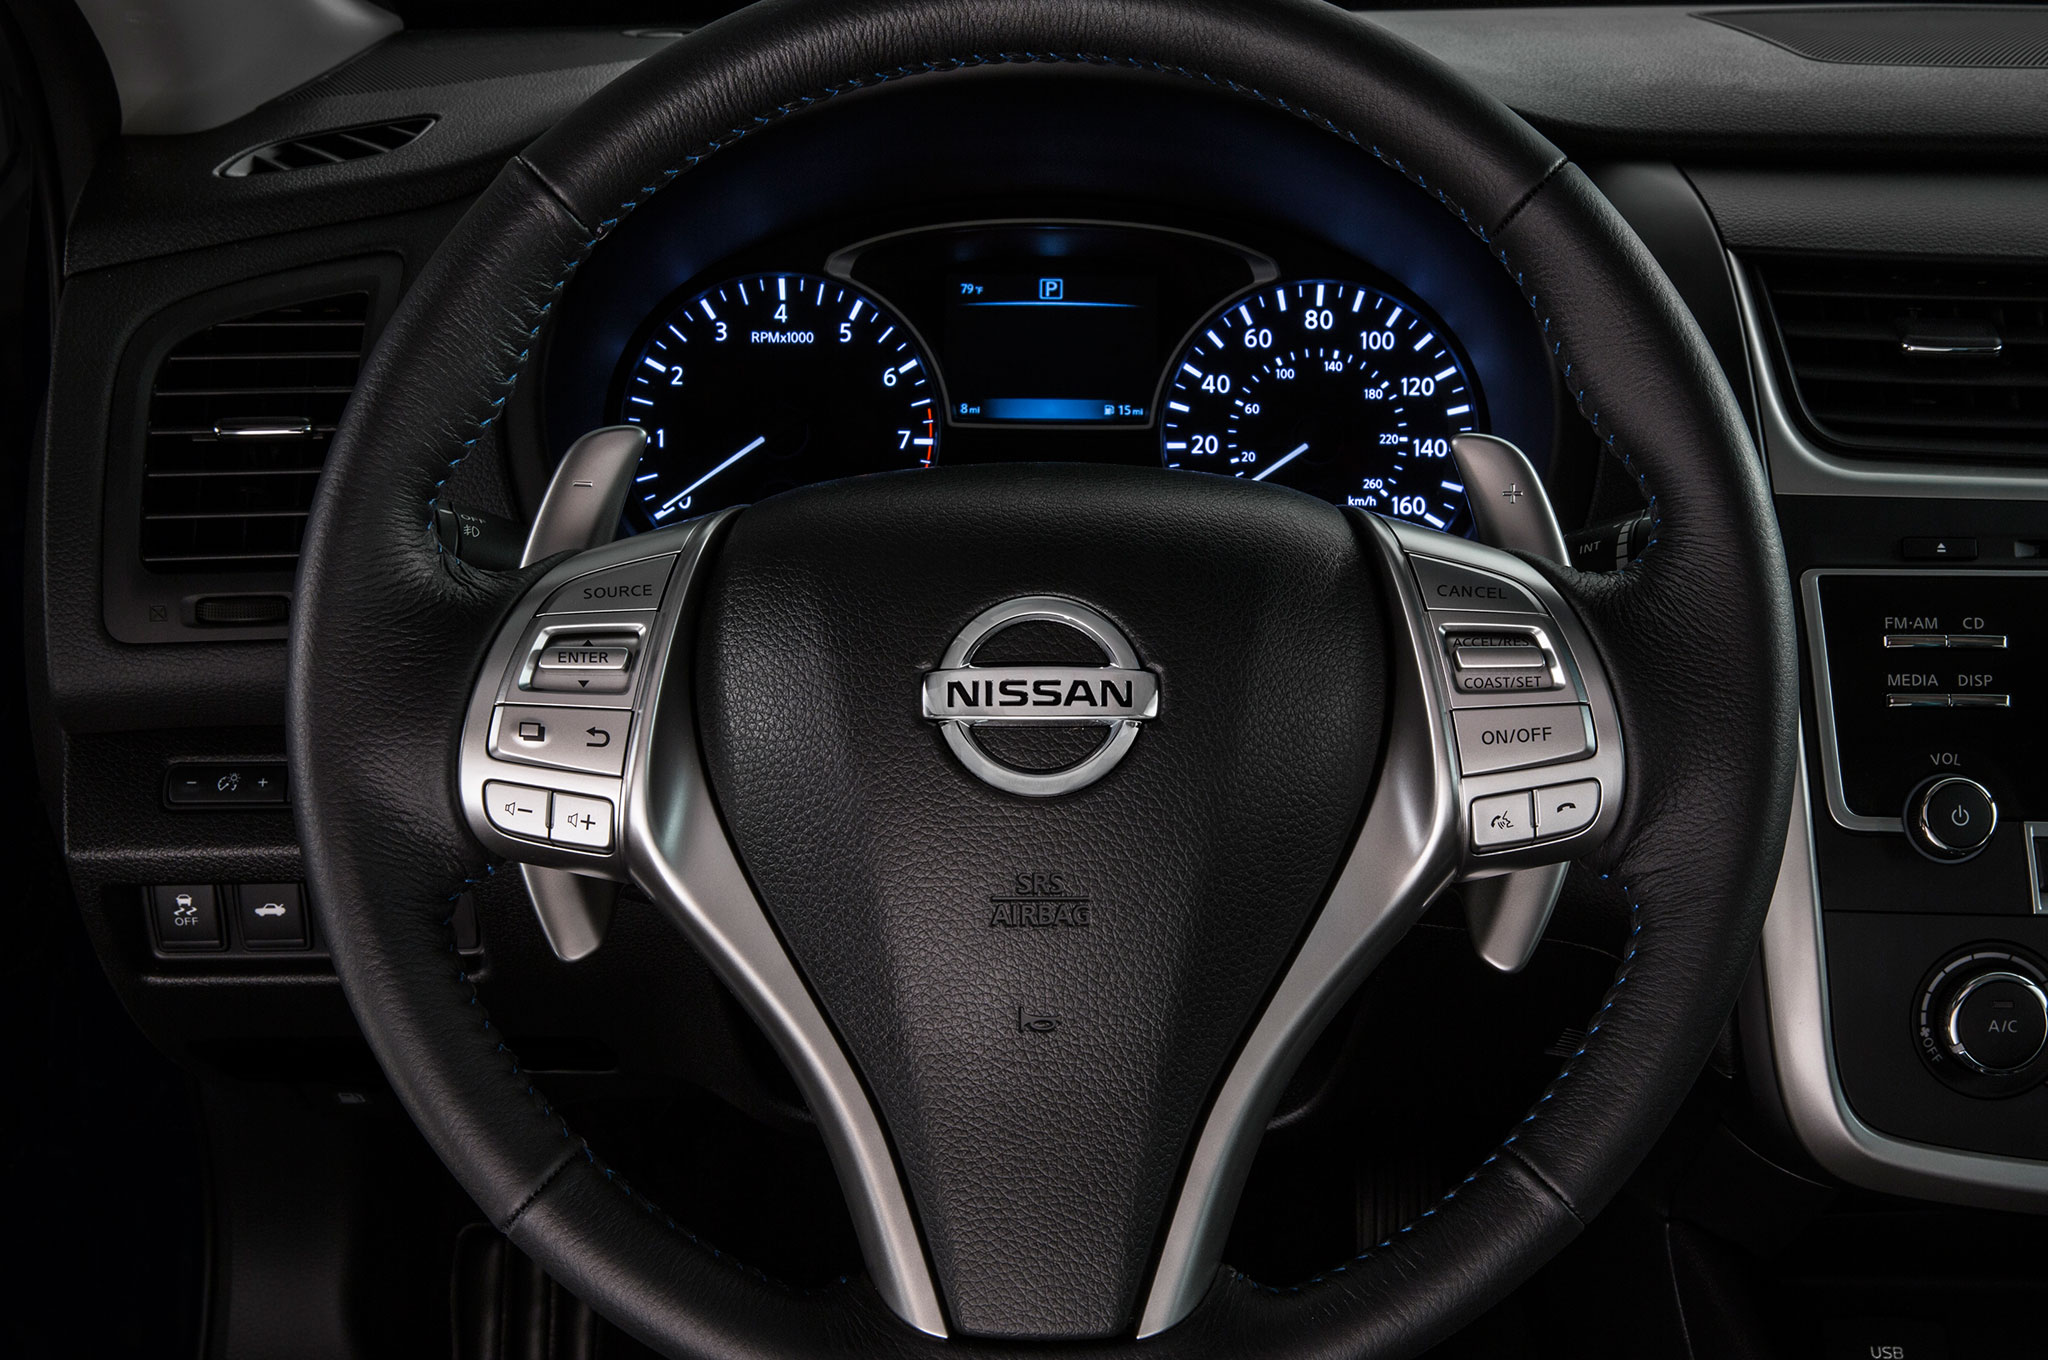 2016 nissan altima updated with maxima like design improved mpg show more vanachro Choice Image